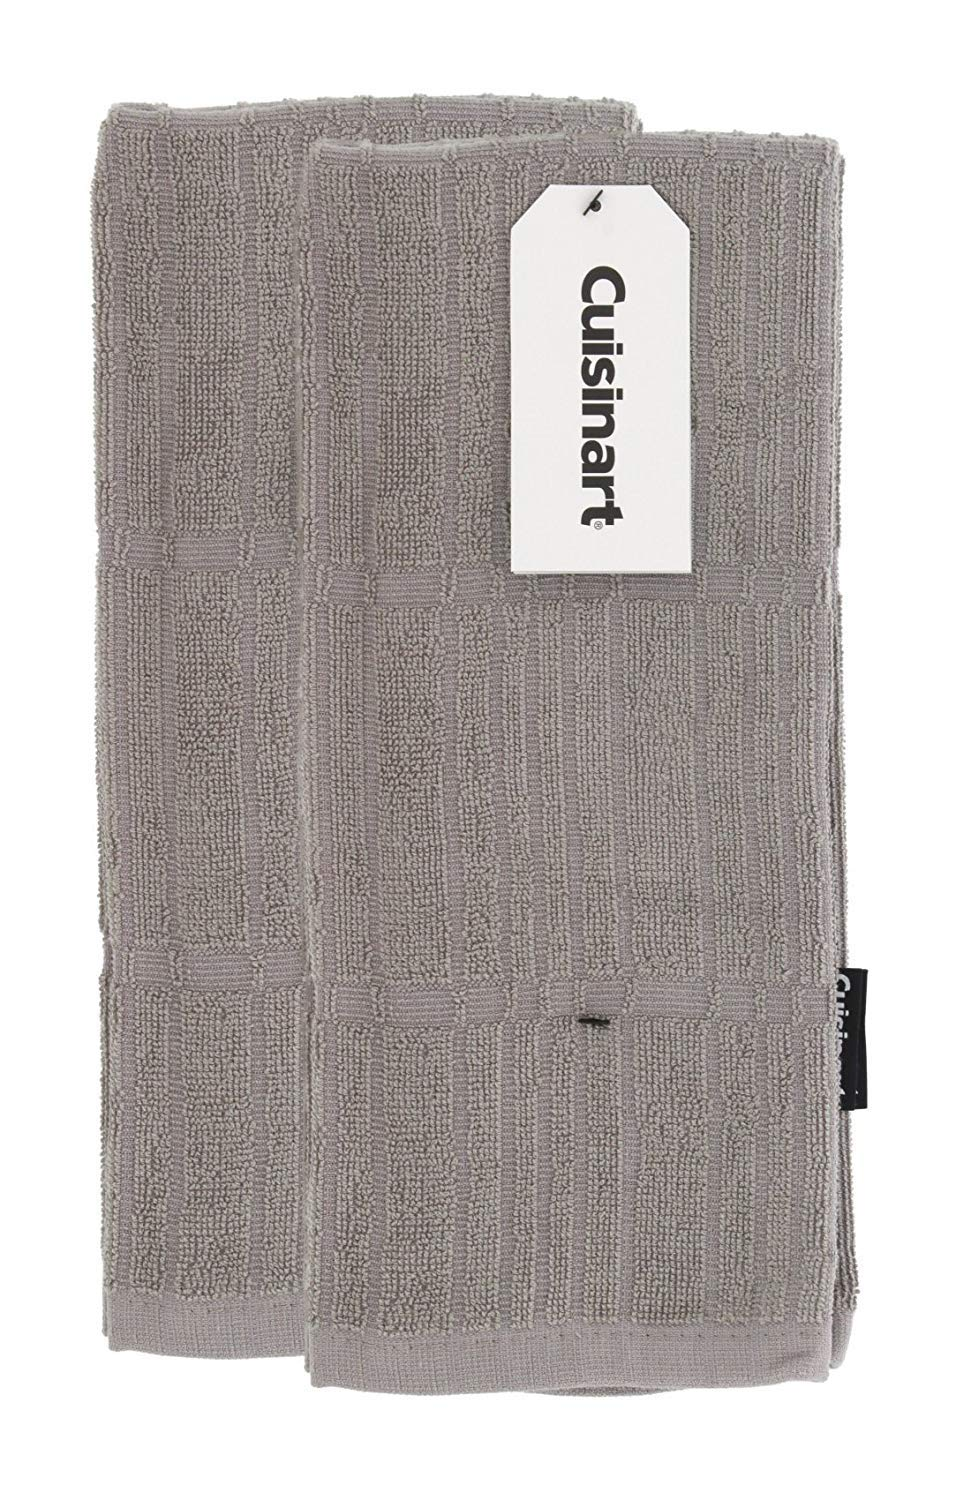 "Cuisinart Bamboo Dish Towel Set-Kitchen and Hand Towels for Drying Dishes / Hands - Absorbent, Soft and Anti-Microbial-Premium Bamboo / Cotton Blend, 2 Pack, 16 x 26"", Drizzle Grey, Bark-Effect Design"